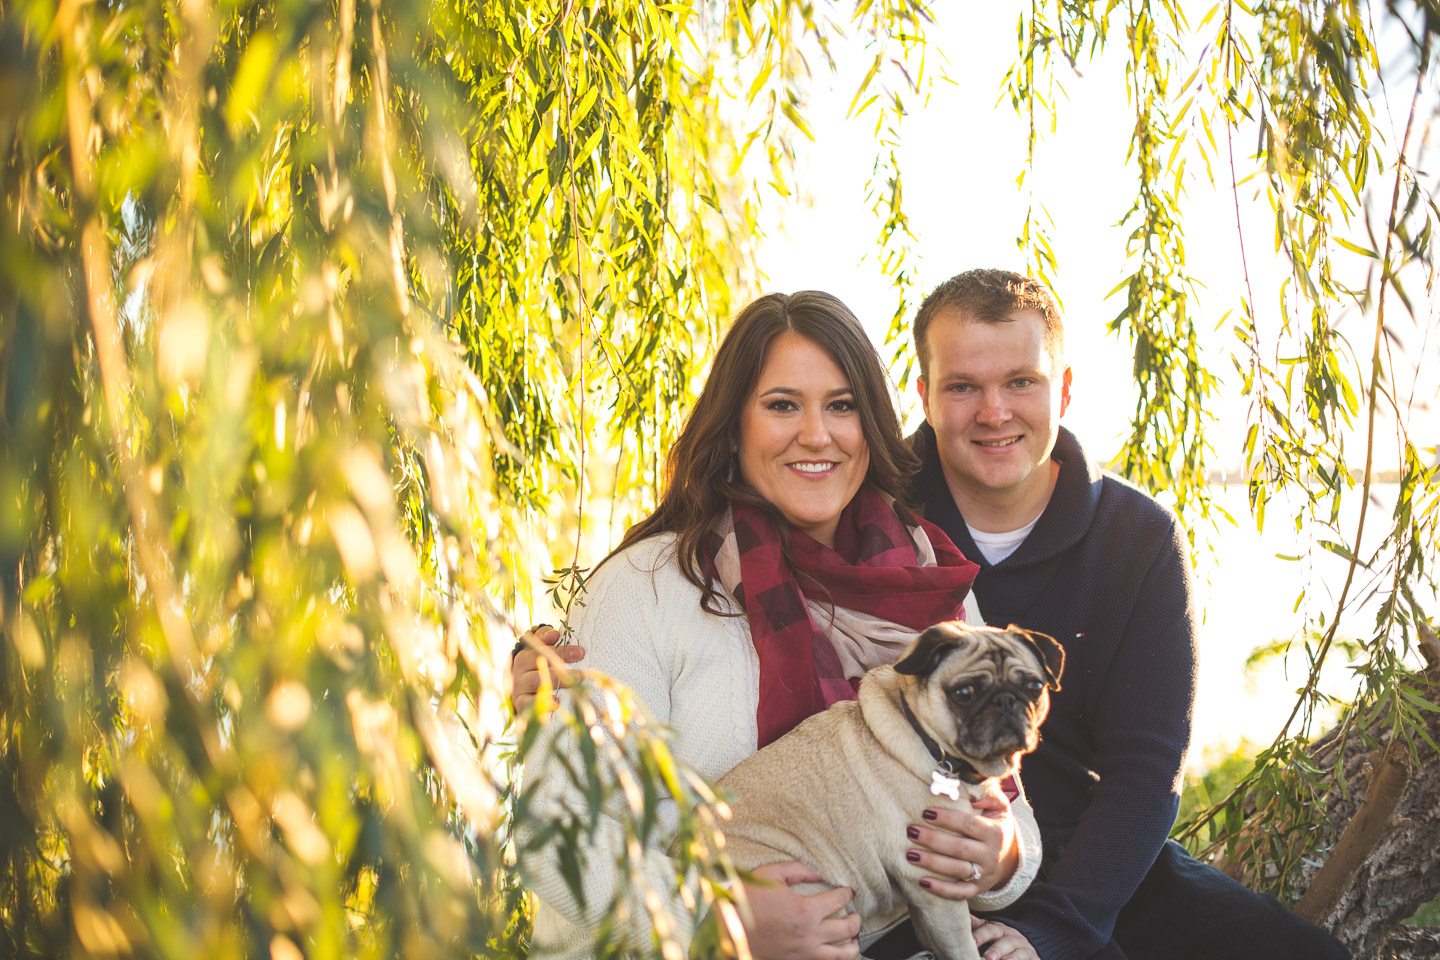 Engagement-Belle-Isle-Detroit-Willow-Couple-Dog